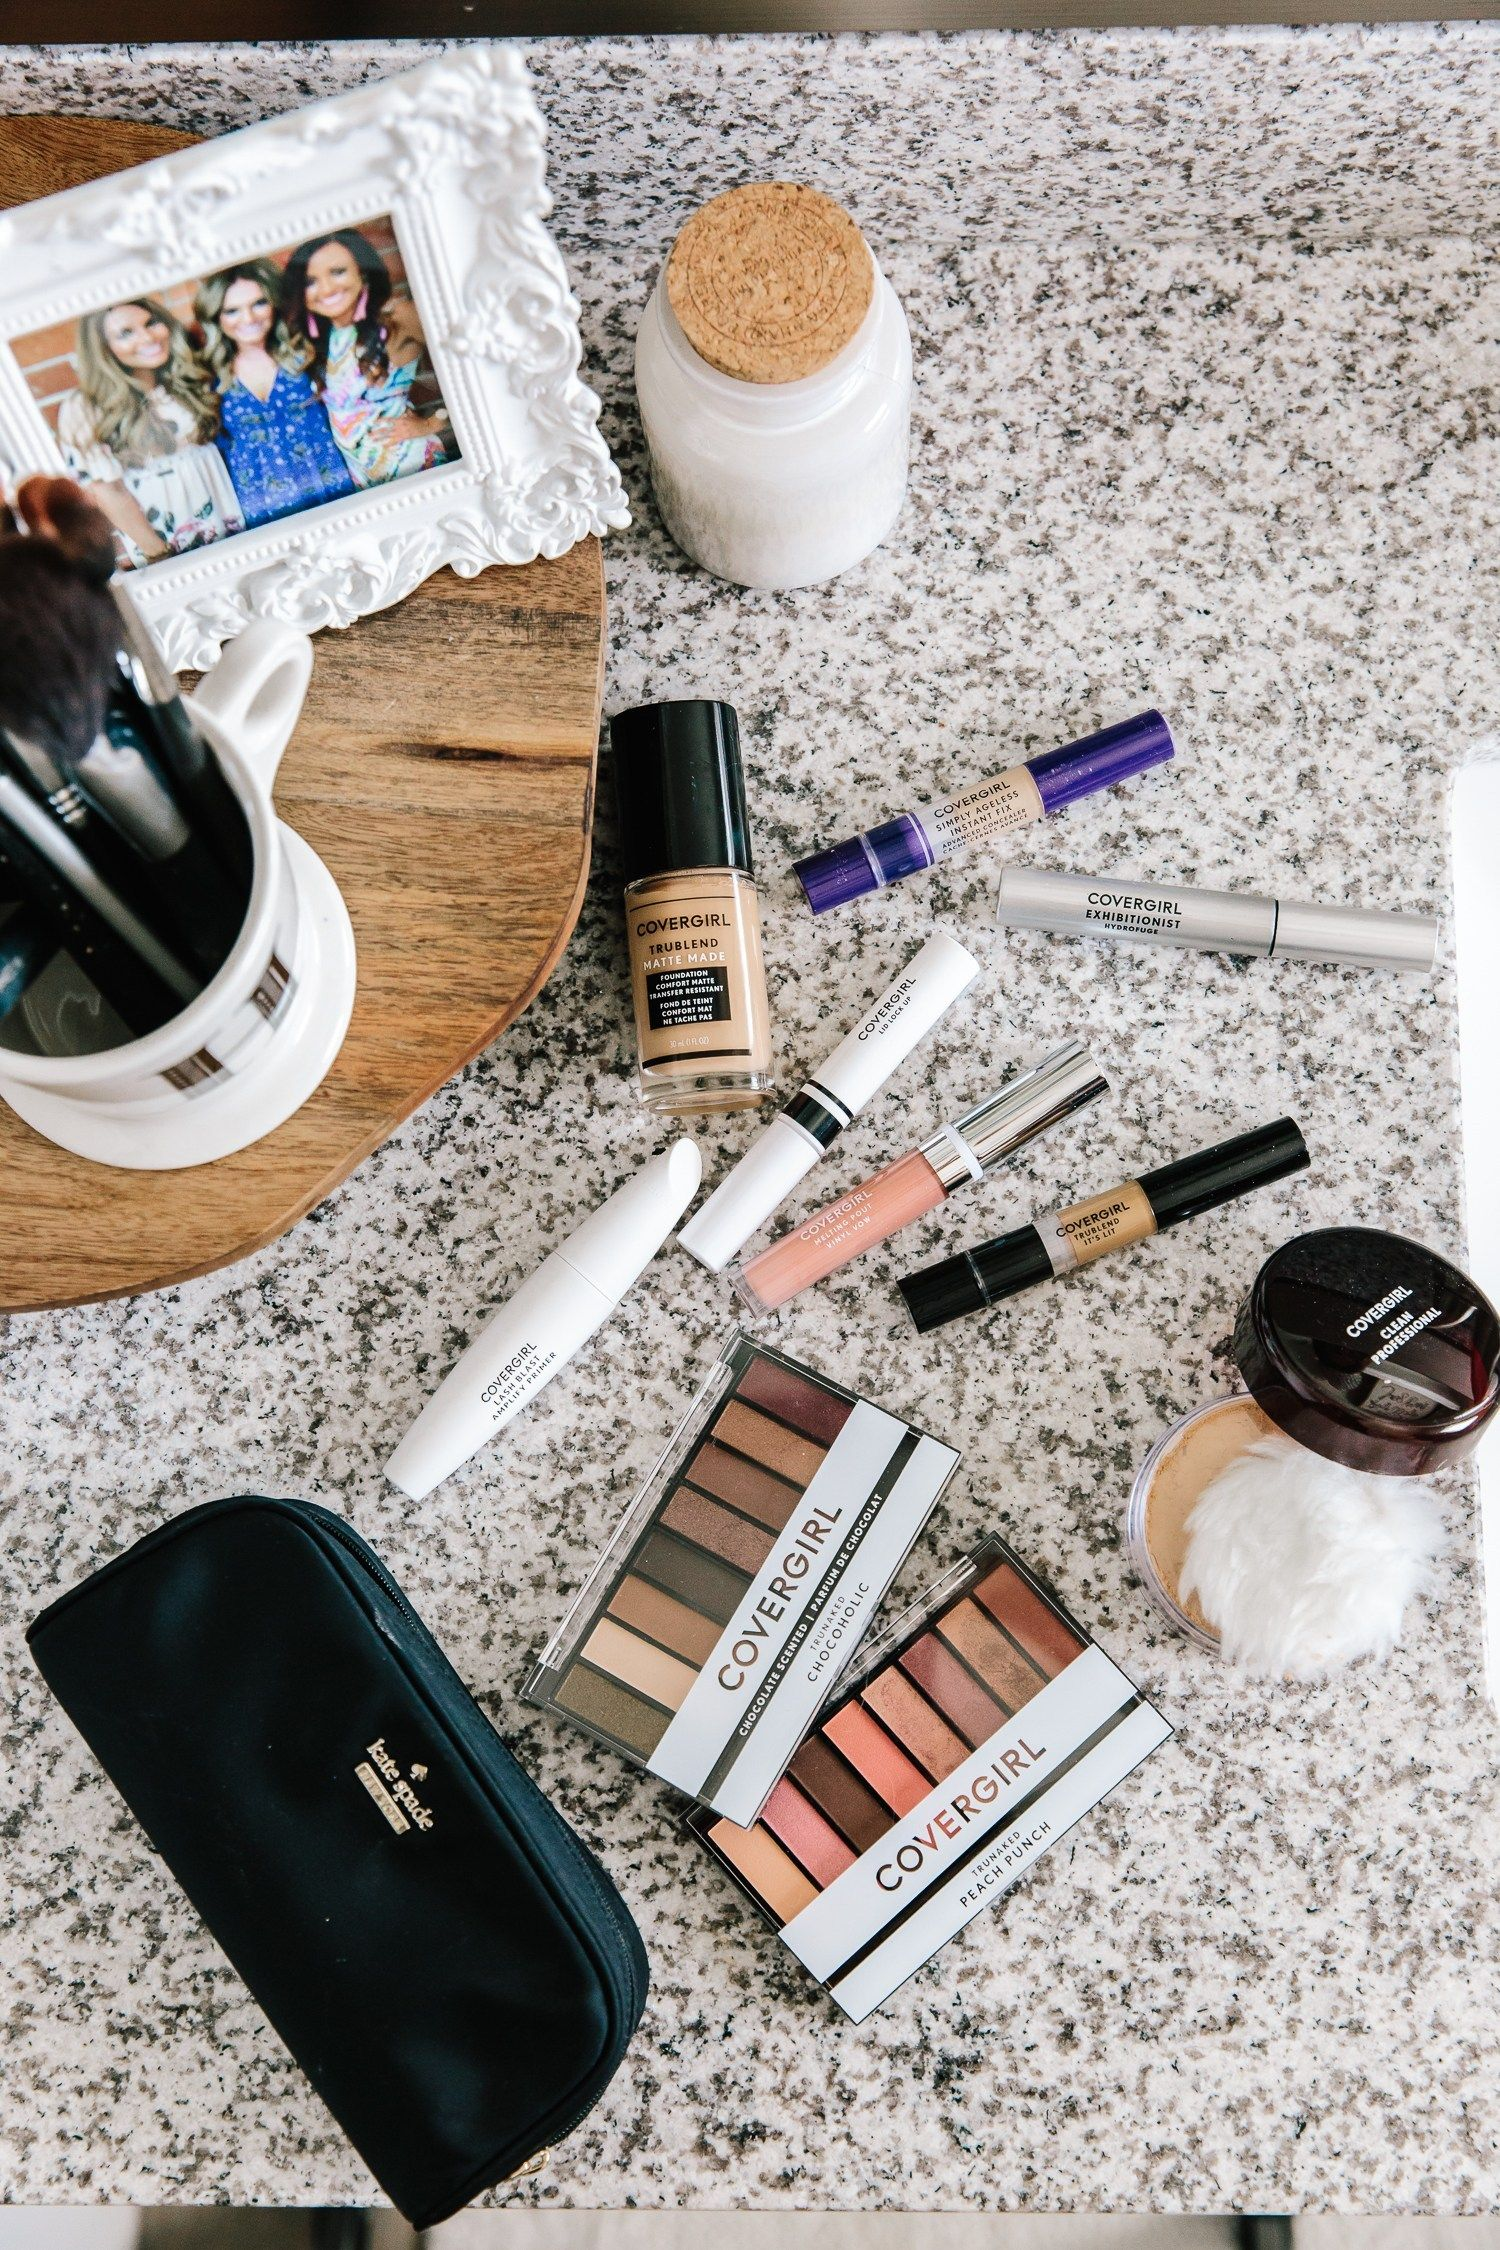 Cruelty Free Drugstore Beauty Hits & Misses by Covergirl